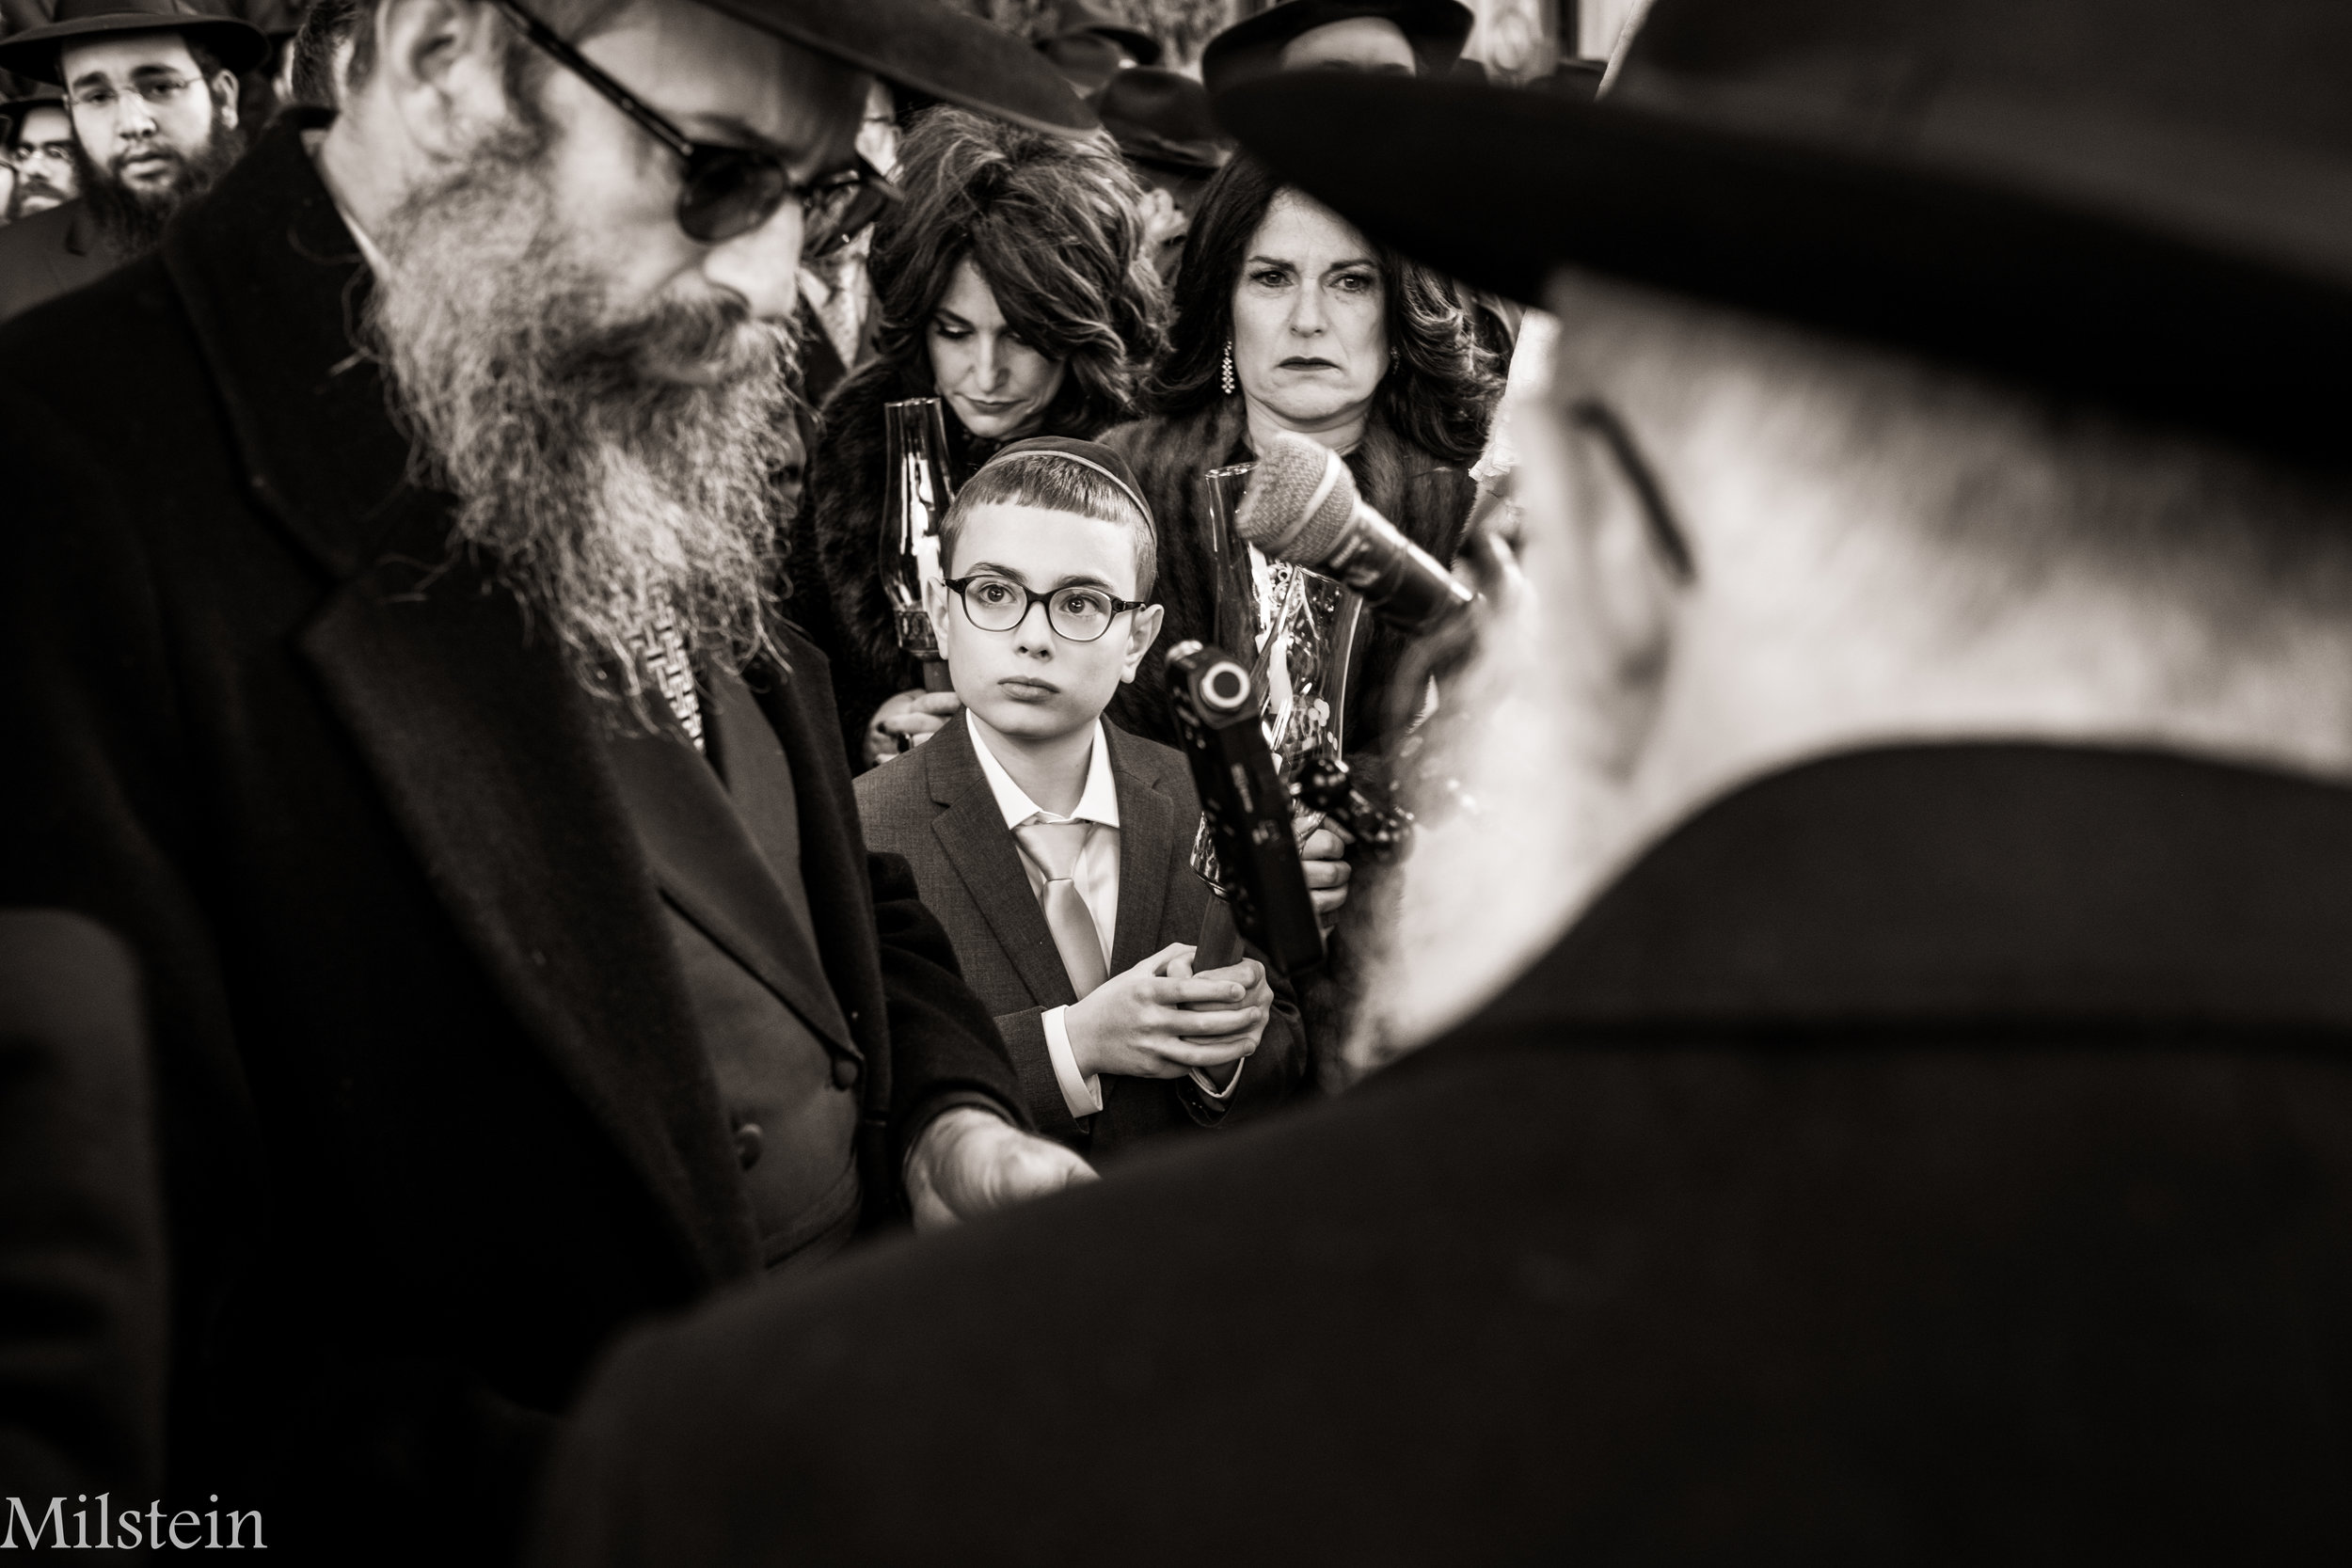 Amy Milstein - wedding pictures NYC